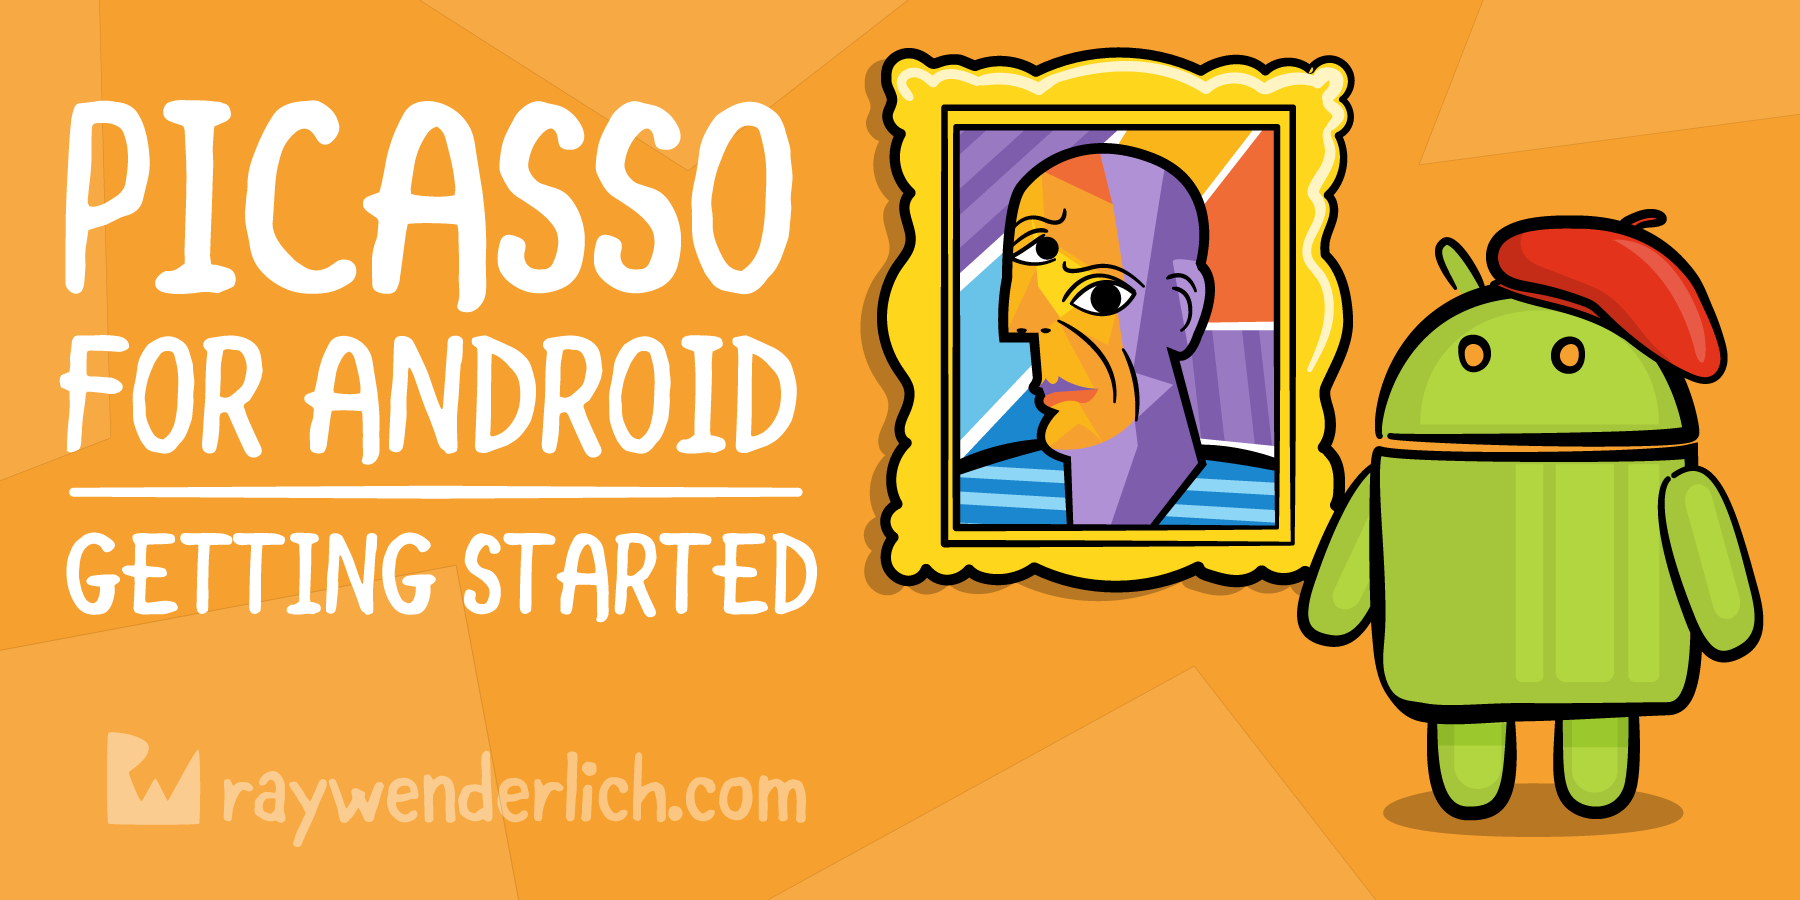 QnA VBage Picasso Tutorial for Android: Getting Started [FREE]